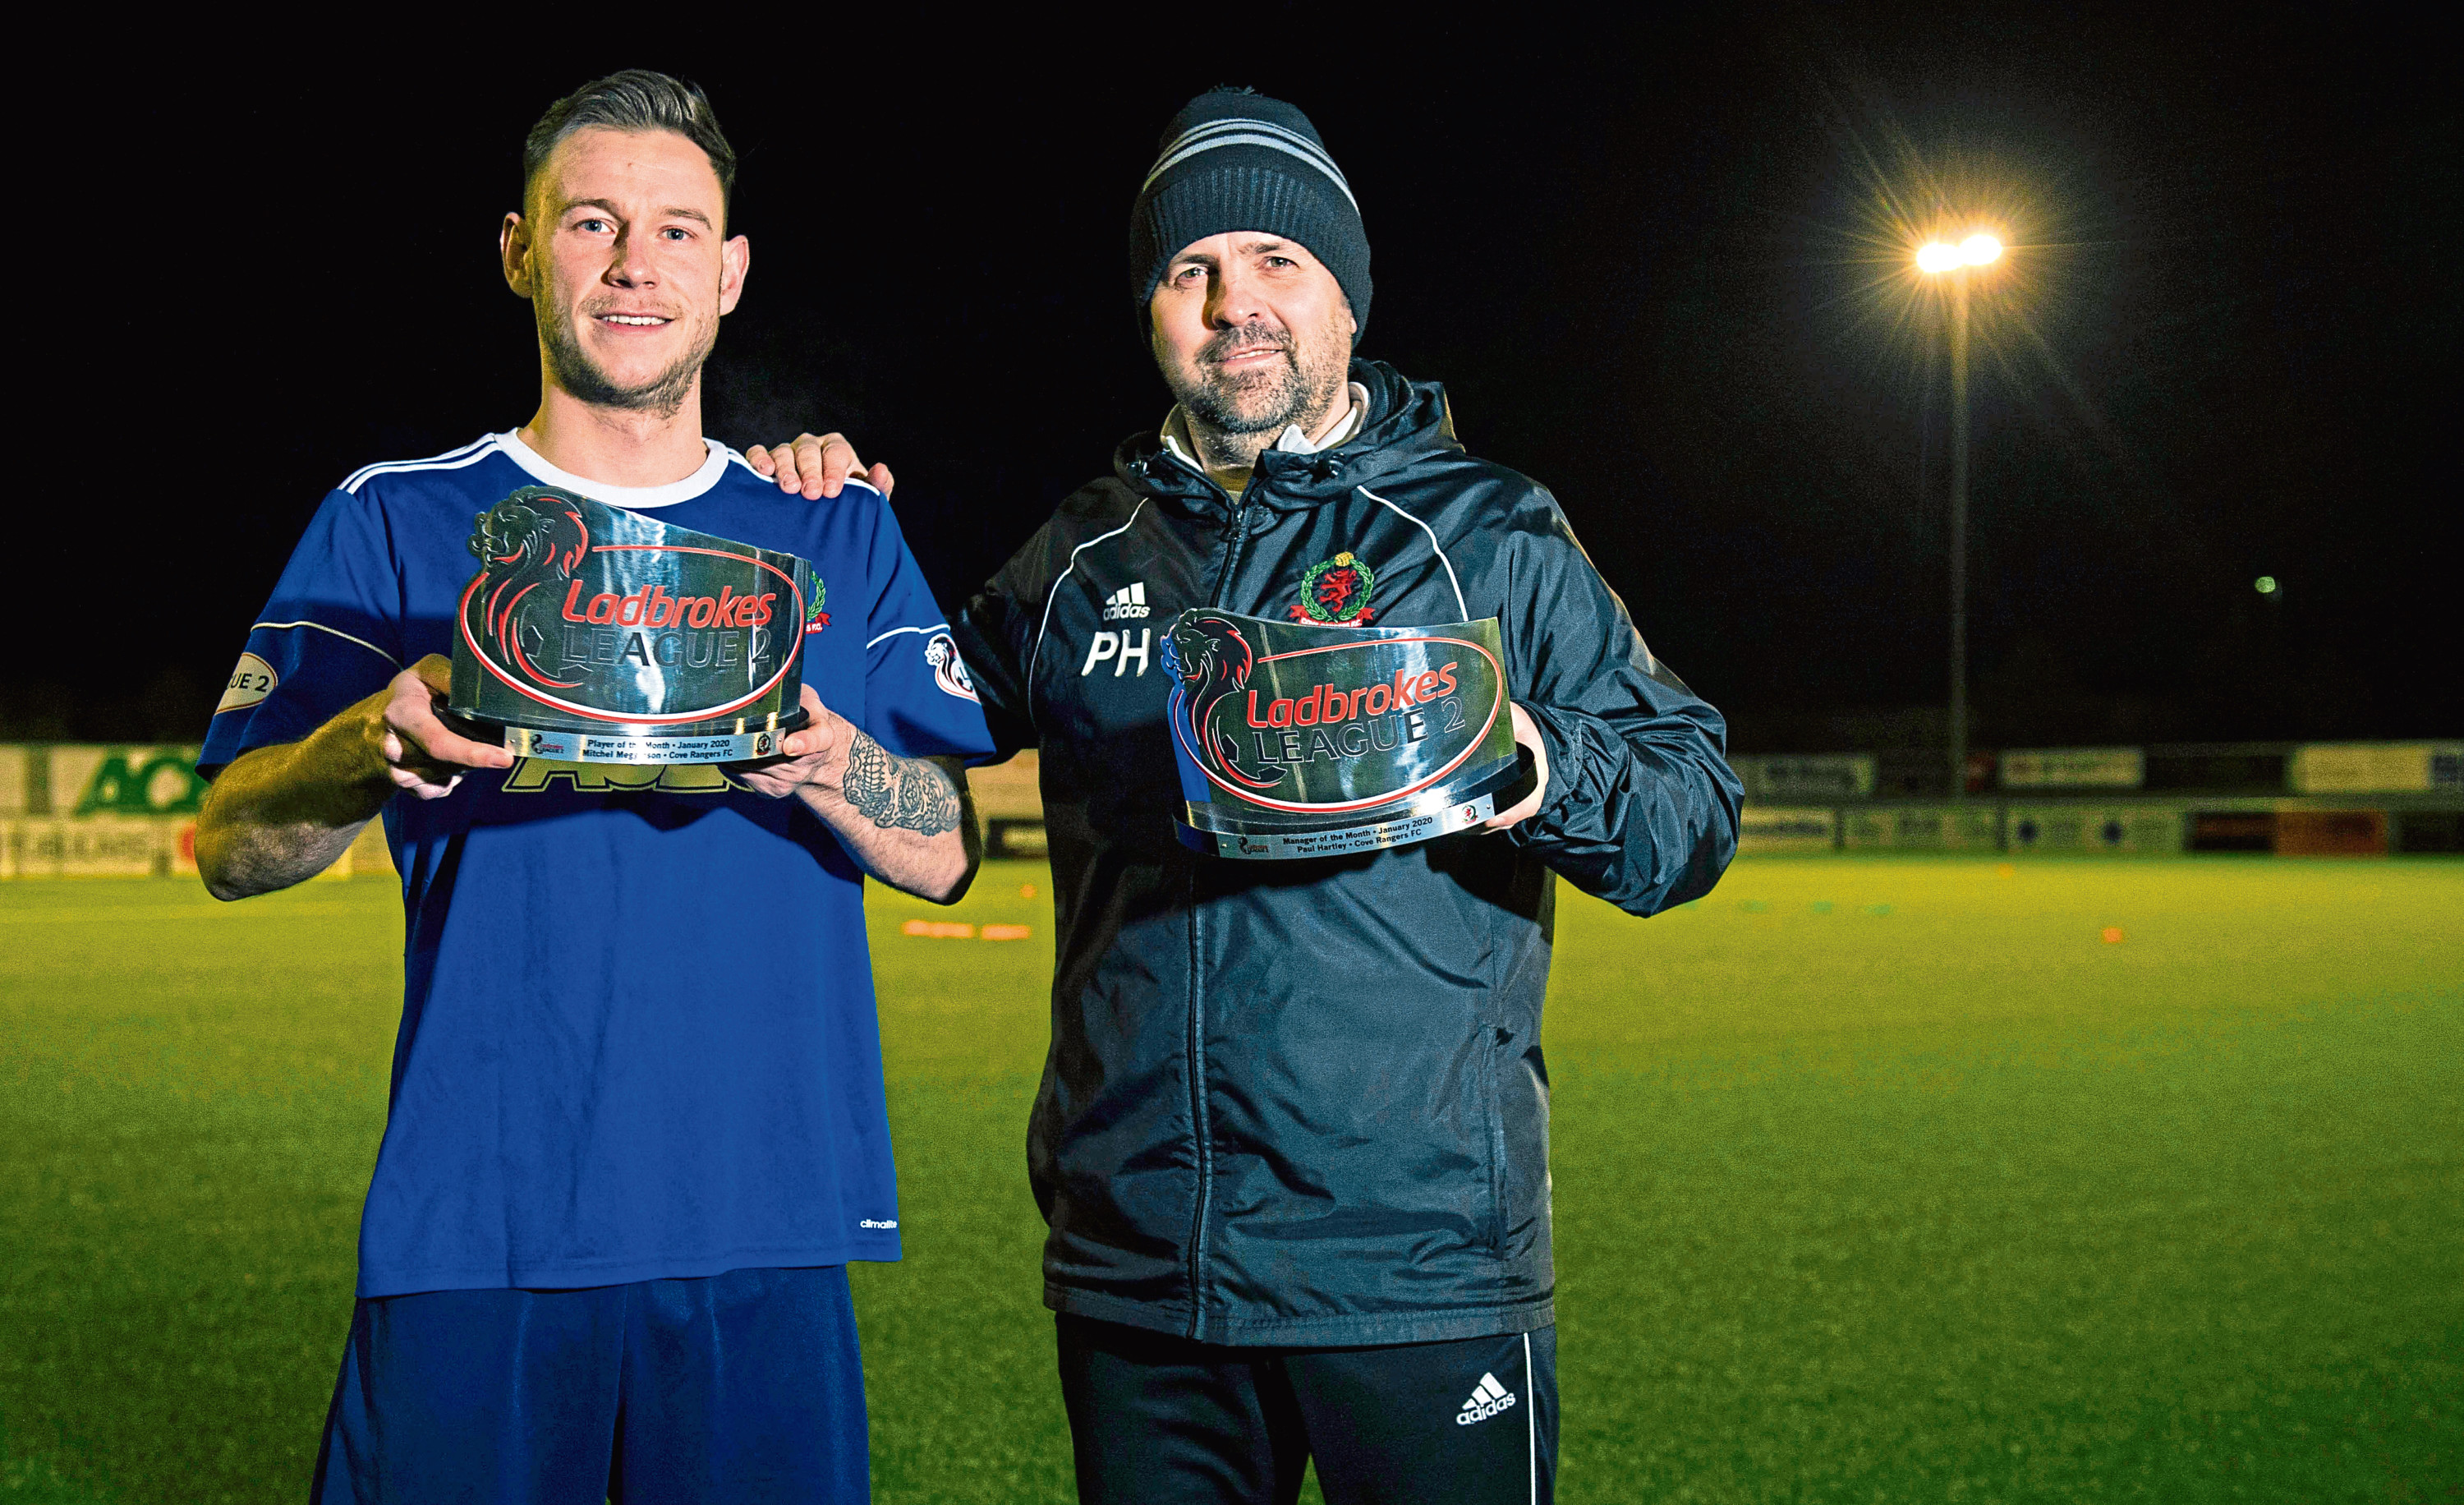 Cove Rangers manager Paul Hartley and striker Mitchel Megginson after receiving the Ladbrokes League 2 Manager and Player of the Month awards for January, at the Balmoral Stadium.